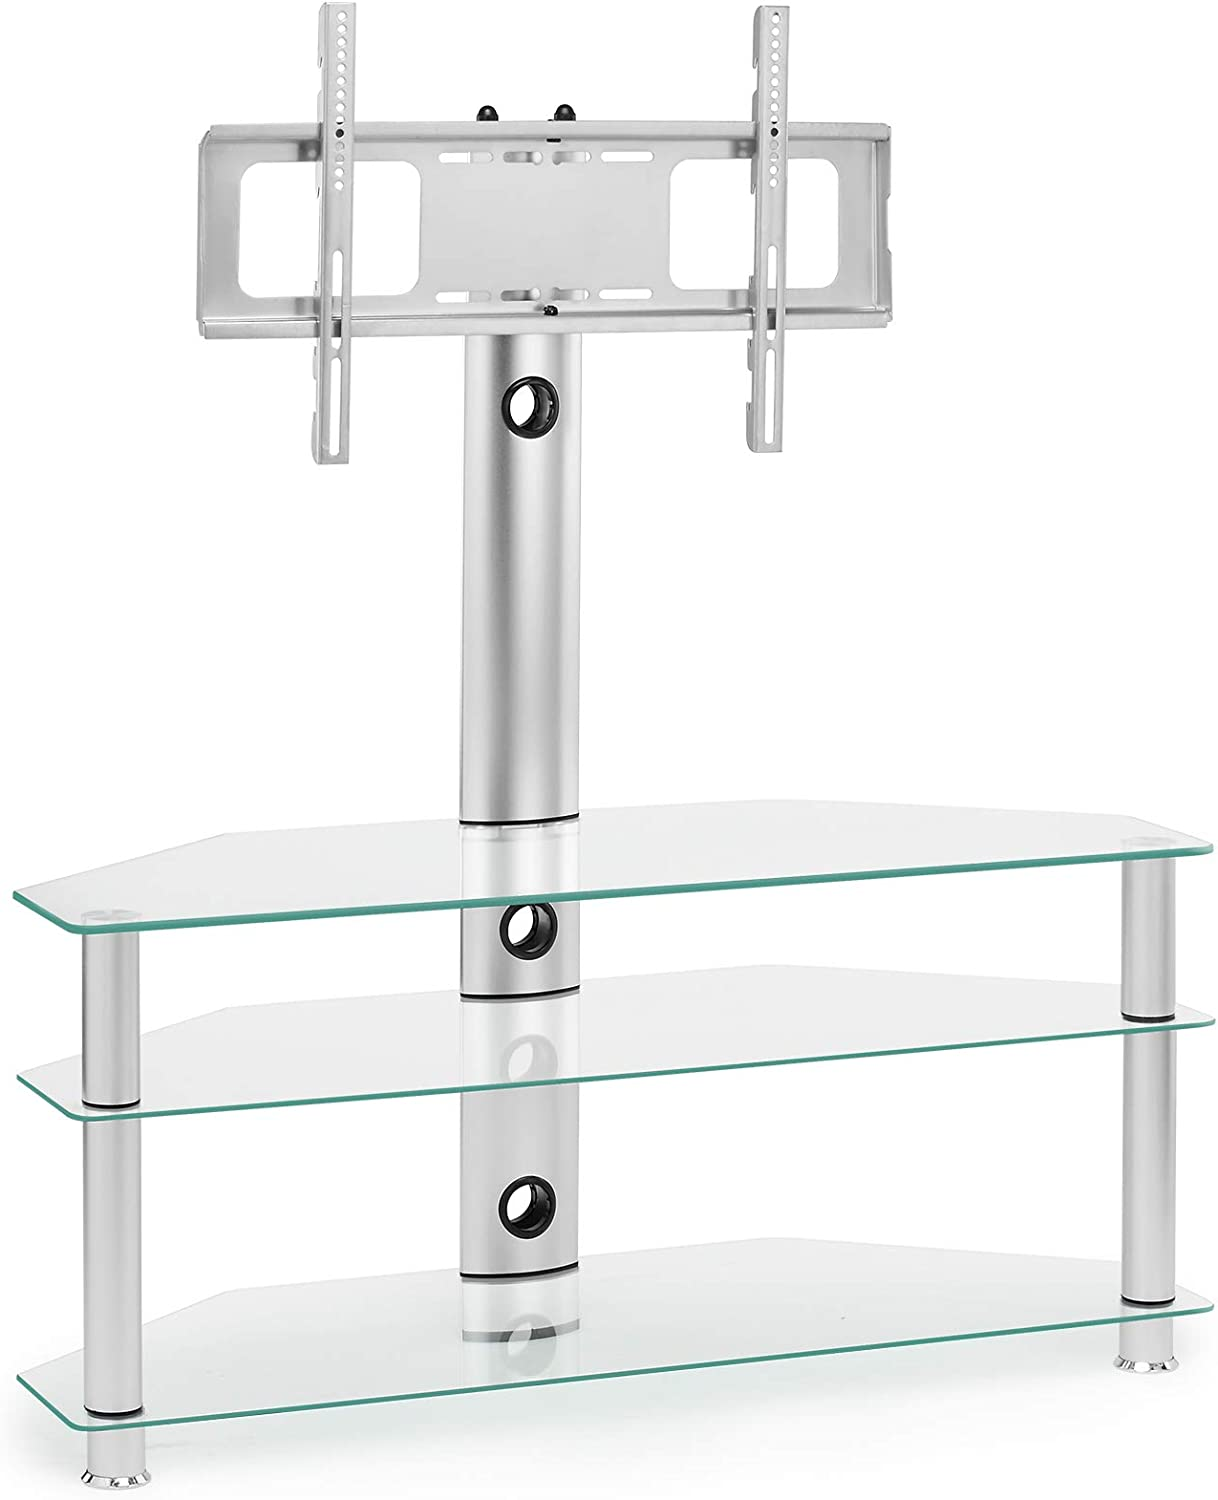 Clear Glass Tv Stand With Mount Swivel Bracket For 32 Amazon Co Uk Electronics